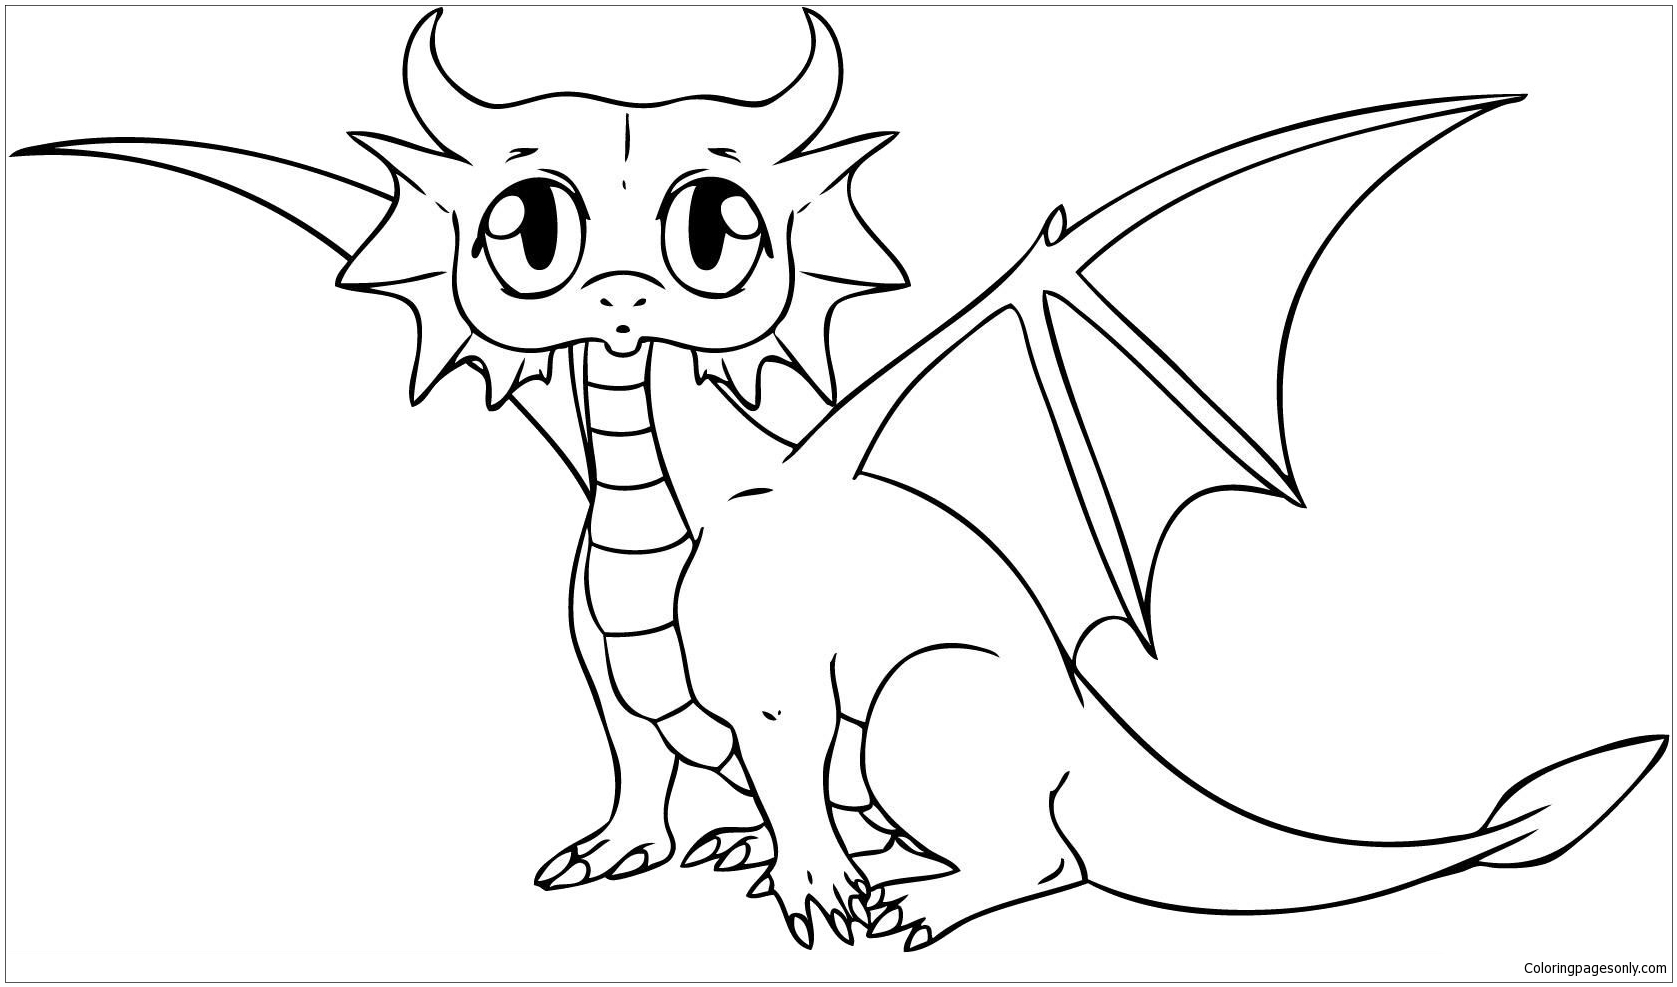 Cute Baby Dragon Coloring Page - Free Coloring Pages Online